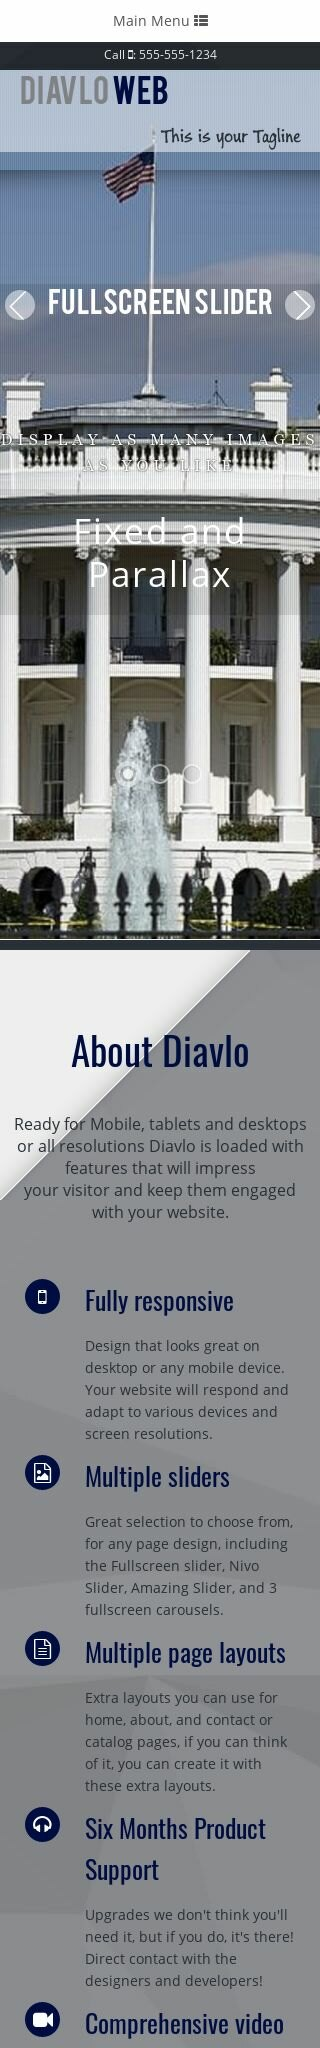 Mobile: Patriotic Dreamweaver Template